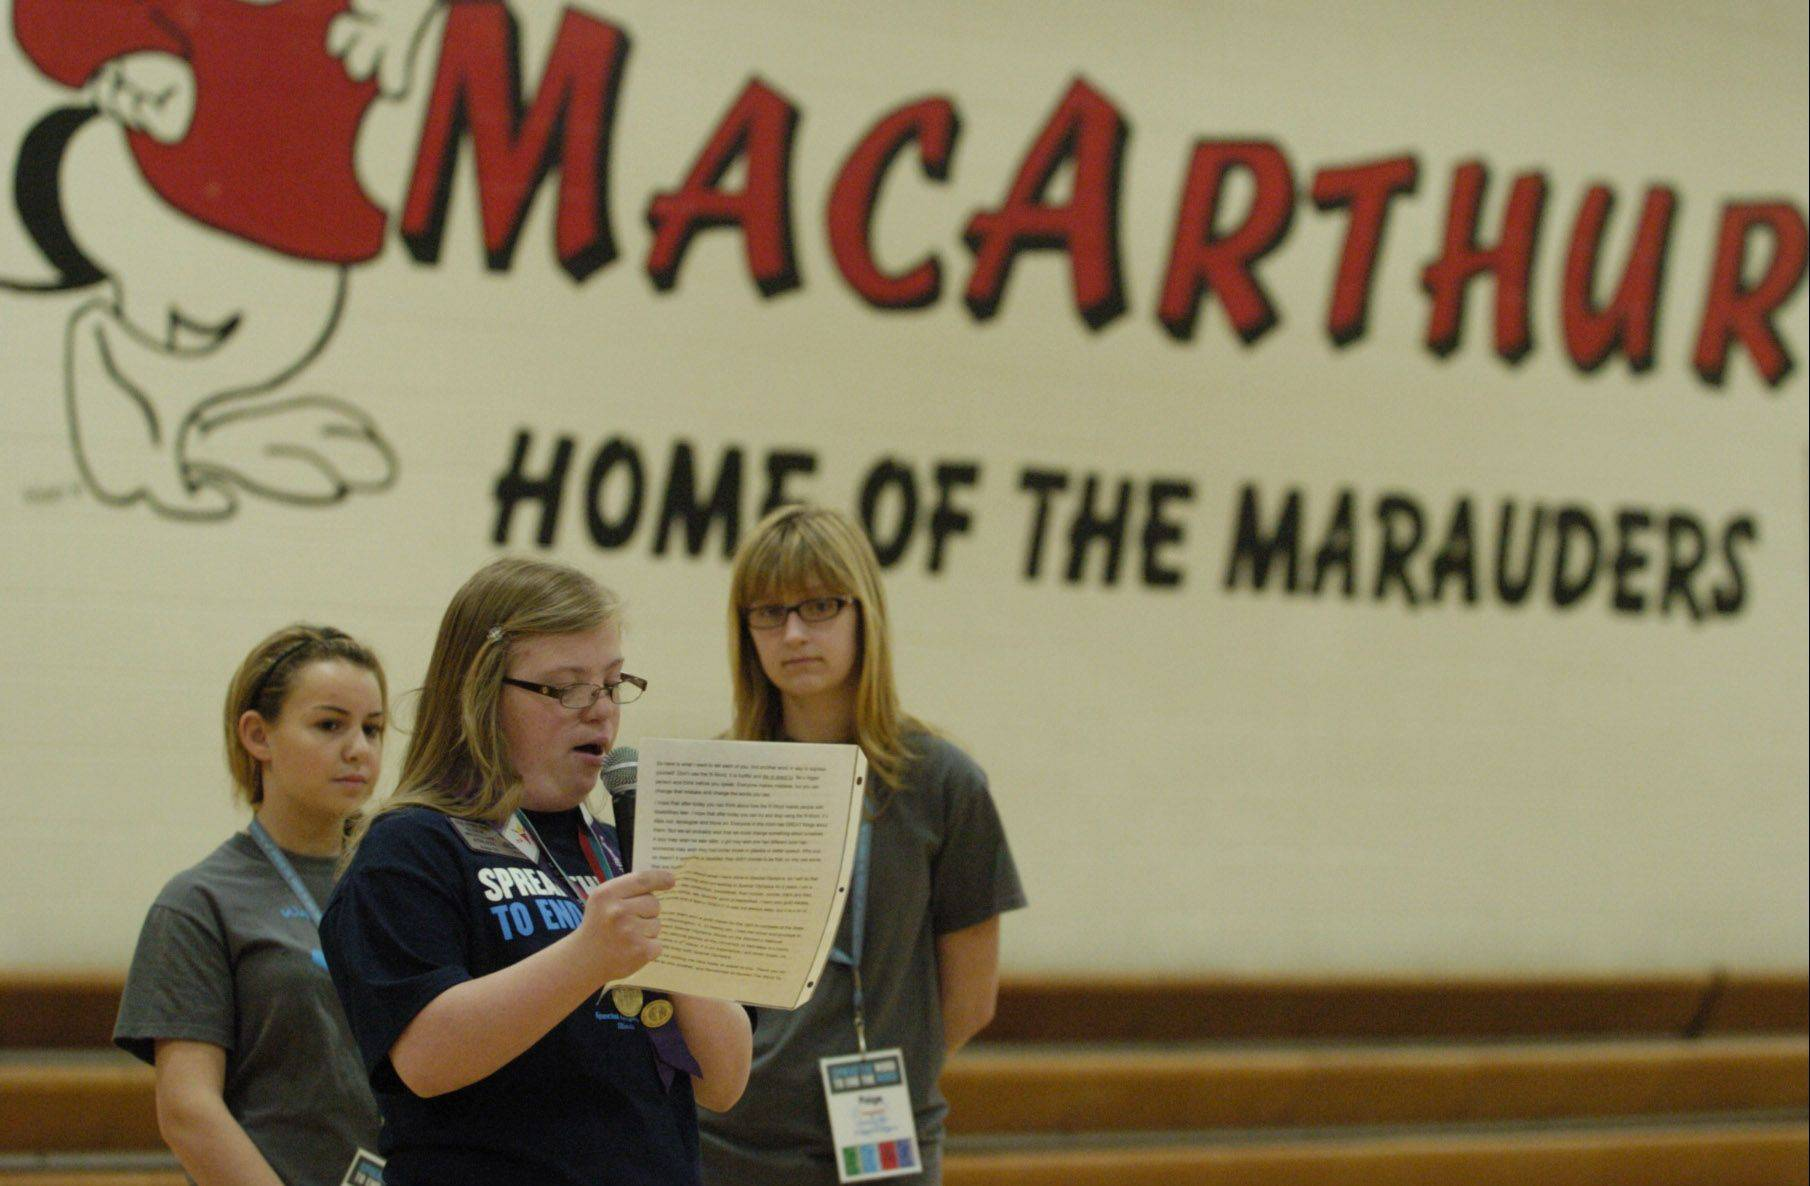 Ela Stoklosa speaks to students at MacArthur Middle School in Prospect Heights. Standing with her at the assembly are Sophia Cacioppo, left, and Paige Palombizio, both seventh-graders from Arlington Heights.